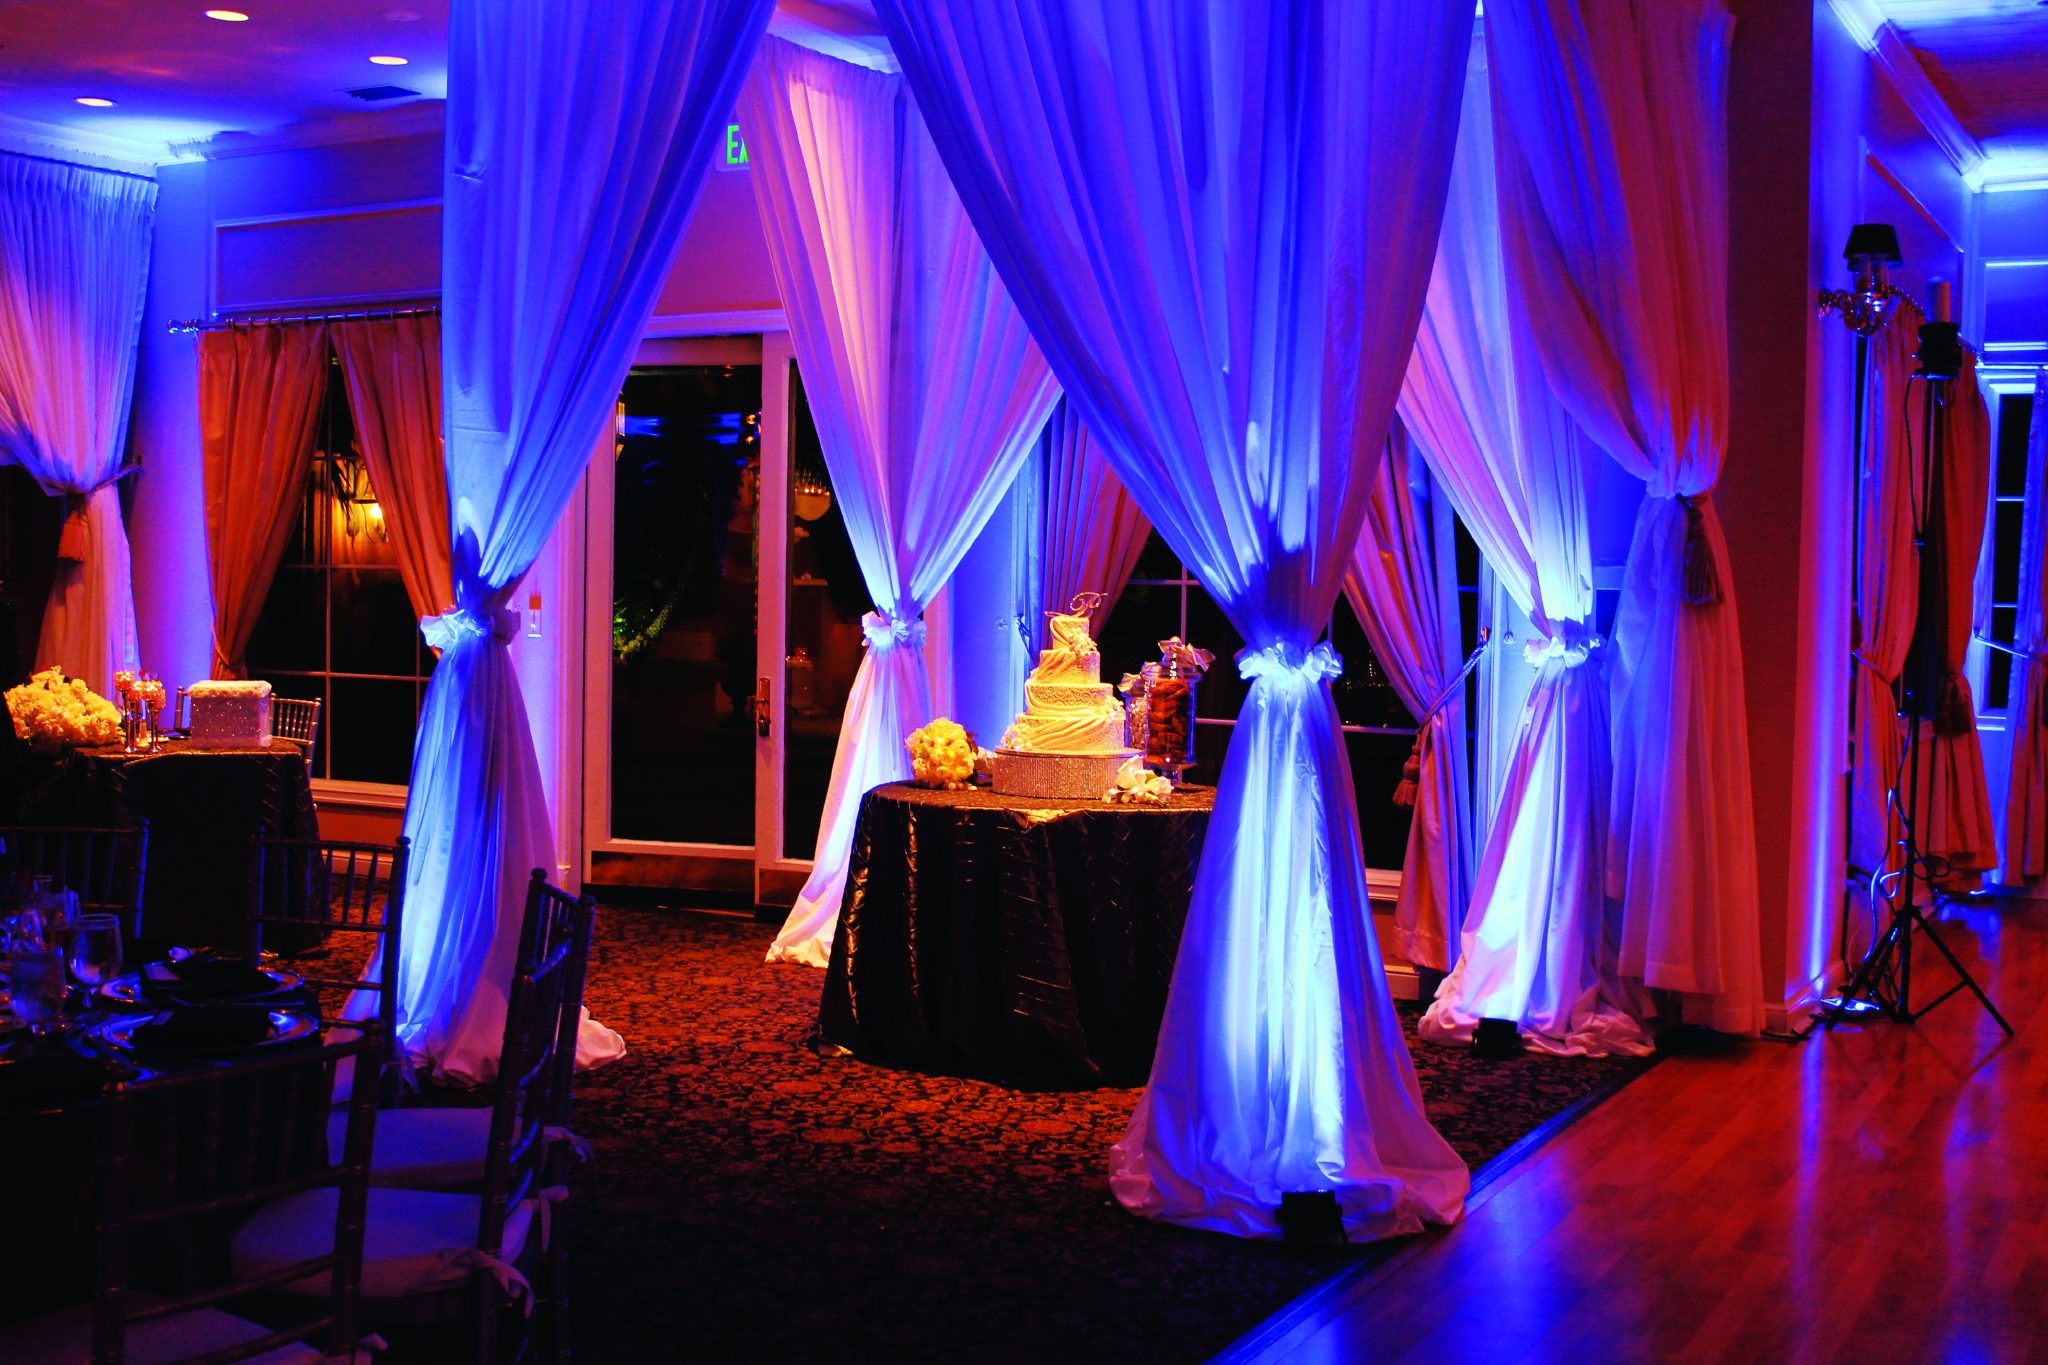 with drapes products bridal event for ceiling to extension events how wedding poshdesigns styling hang backdrop fairylights